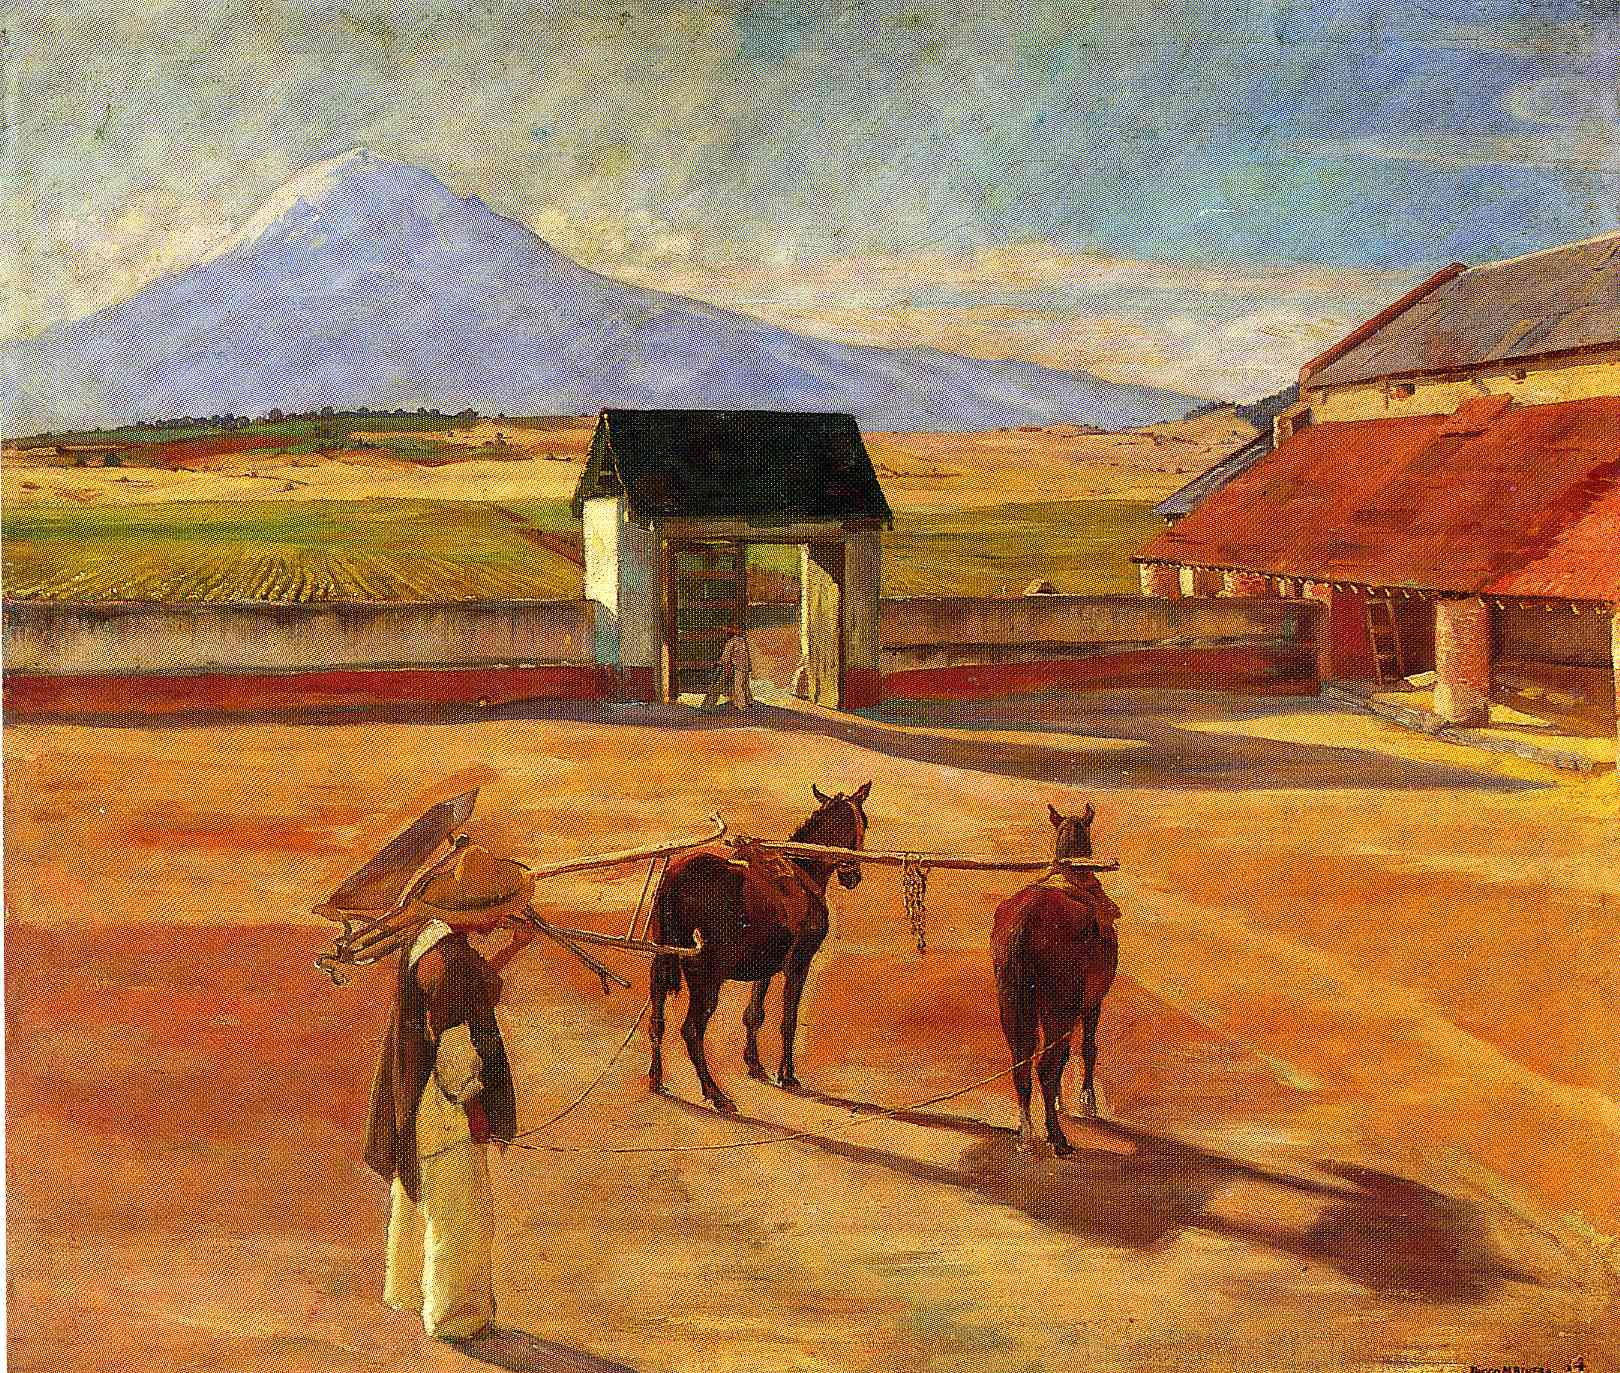 La Era (The Threshing Floor) 1904 (oil on canvas), 1904